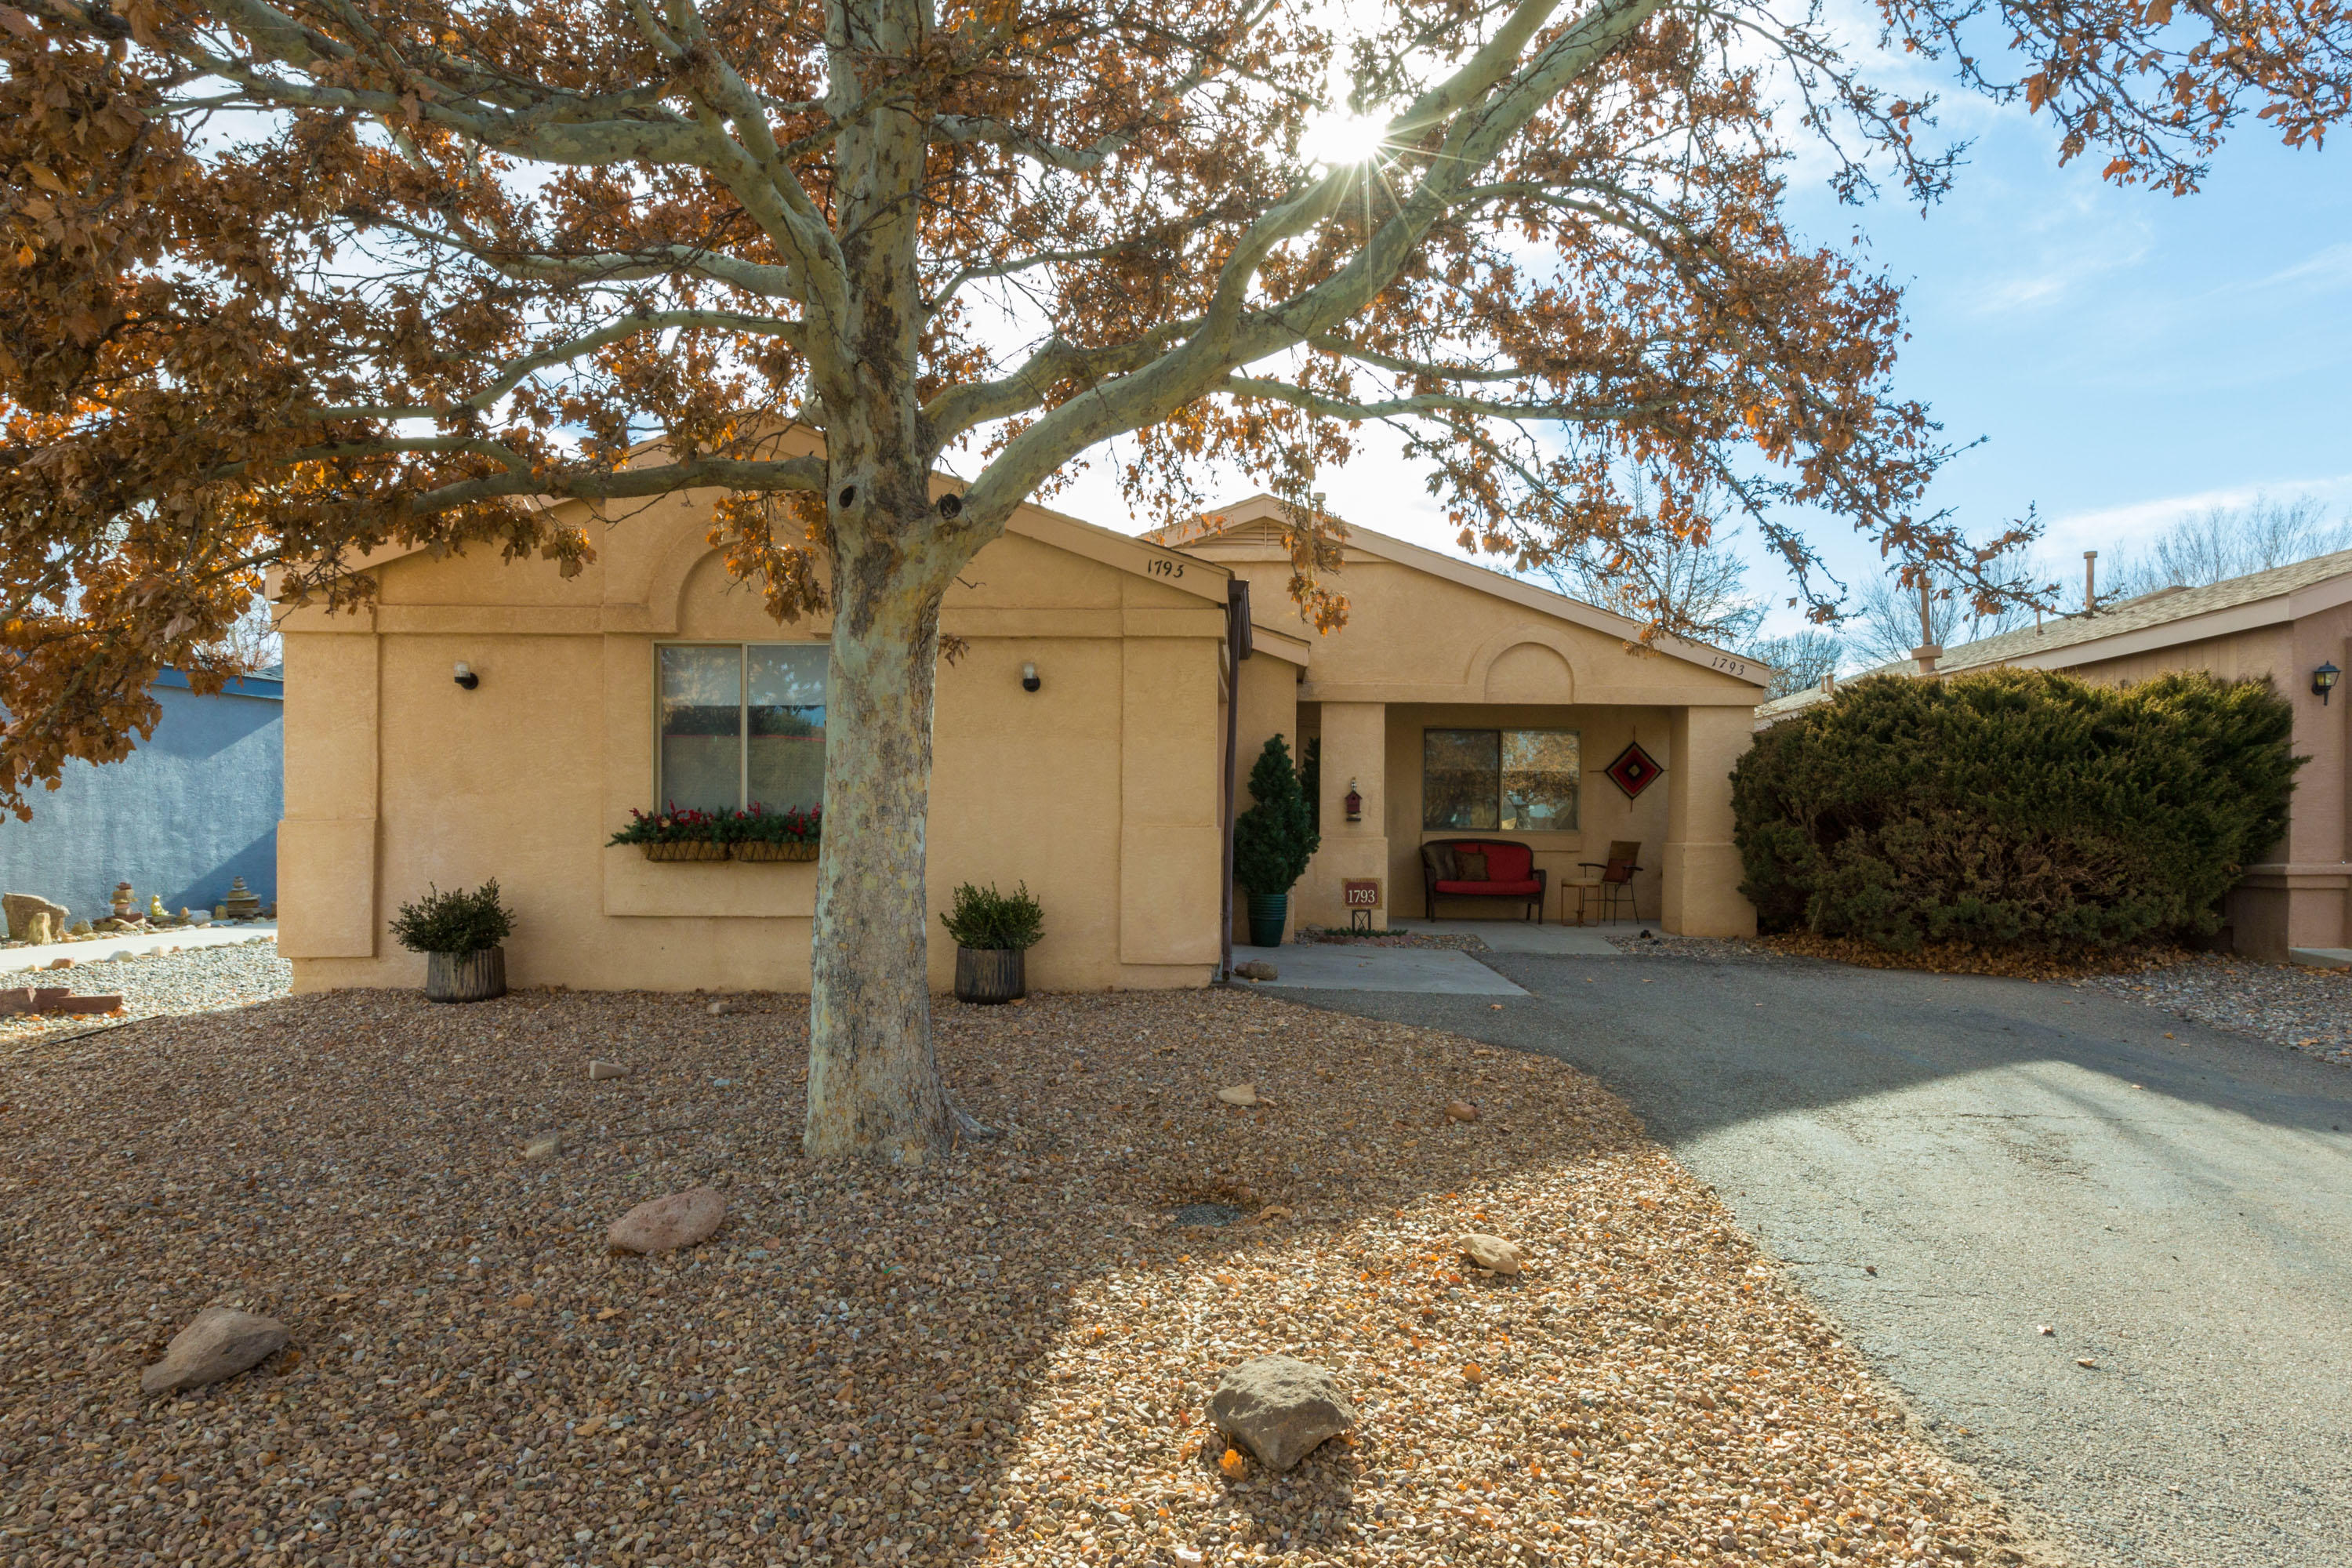 Welcome to your New Home! Charming well maintained 2Bedroom, 1.75Beds, 1Car Garage. Home is the perfect start for anyone looking in the Rio Rancho area with Great Schools, Medical Centers & Shopping Centers! All Appliances Stay, A Great Place to call Home!